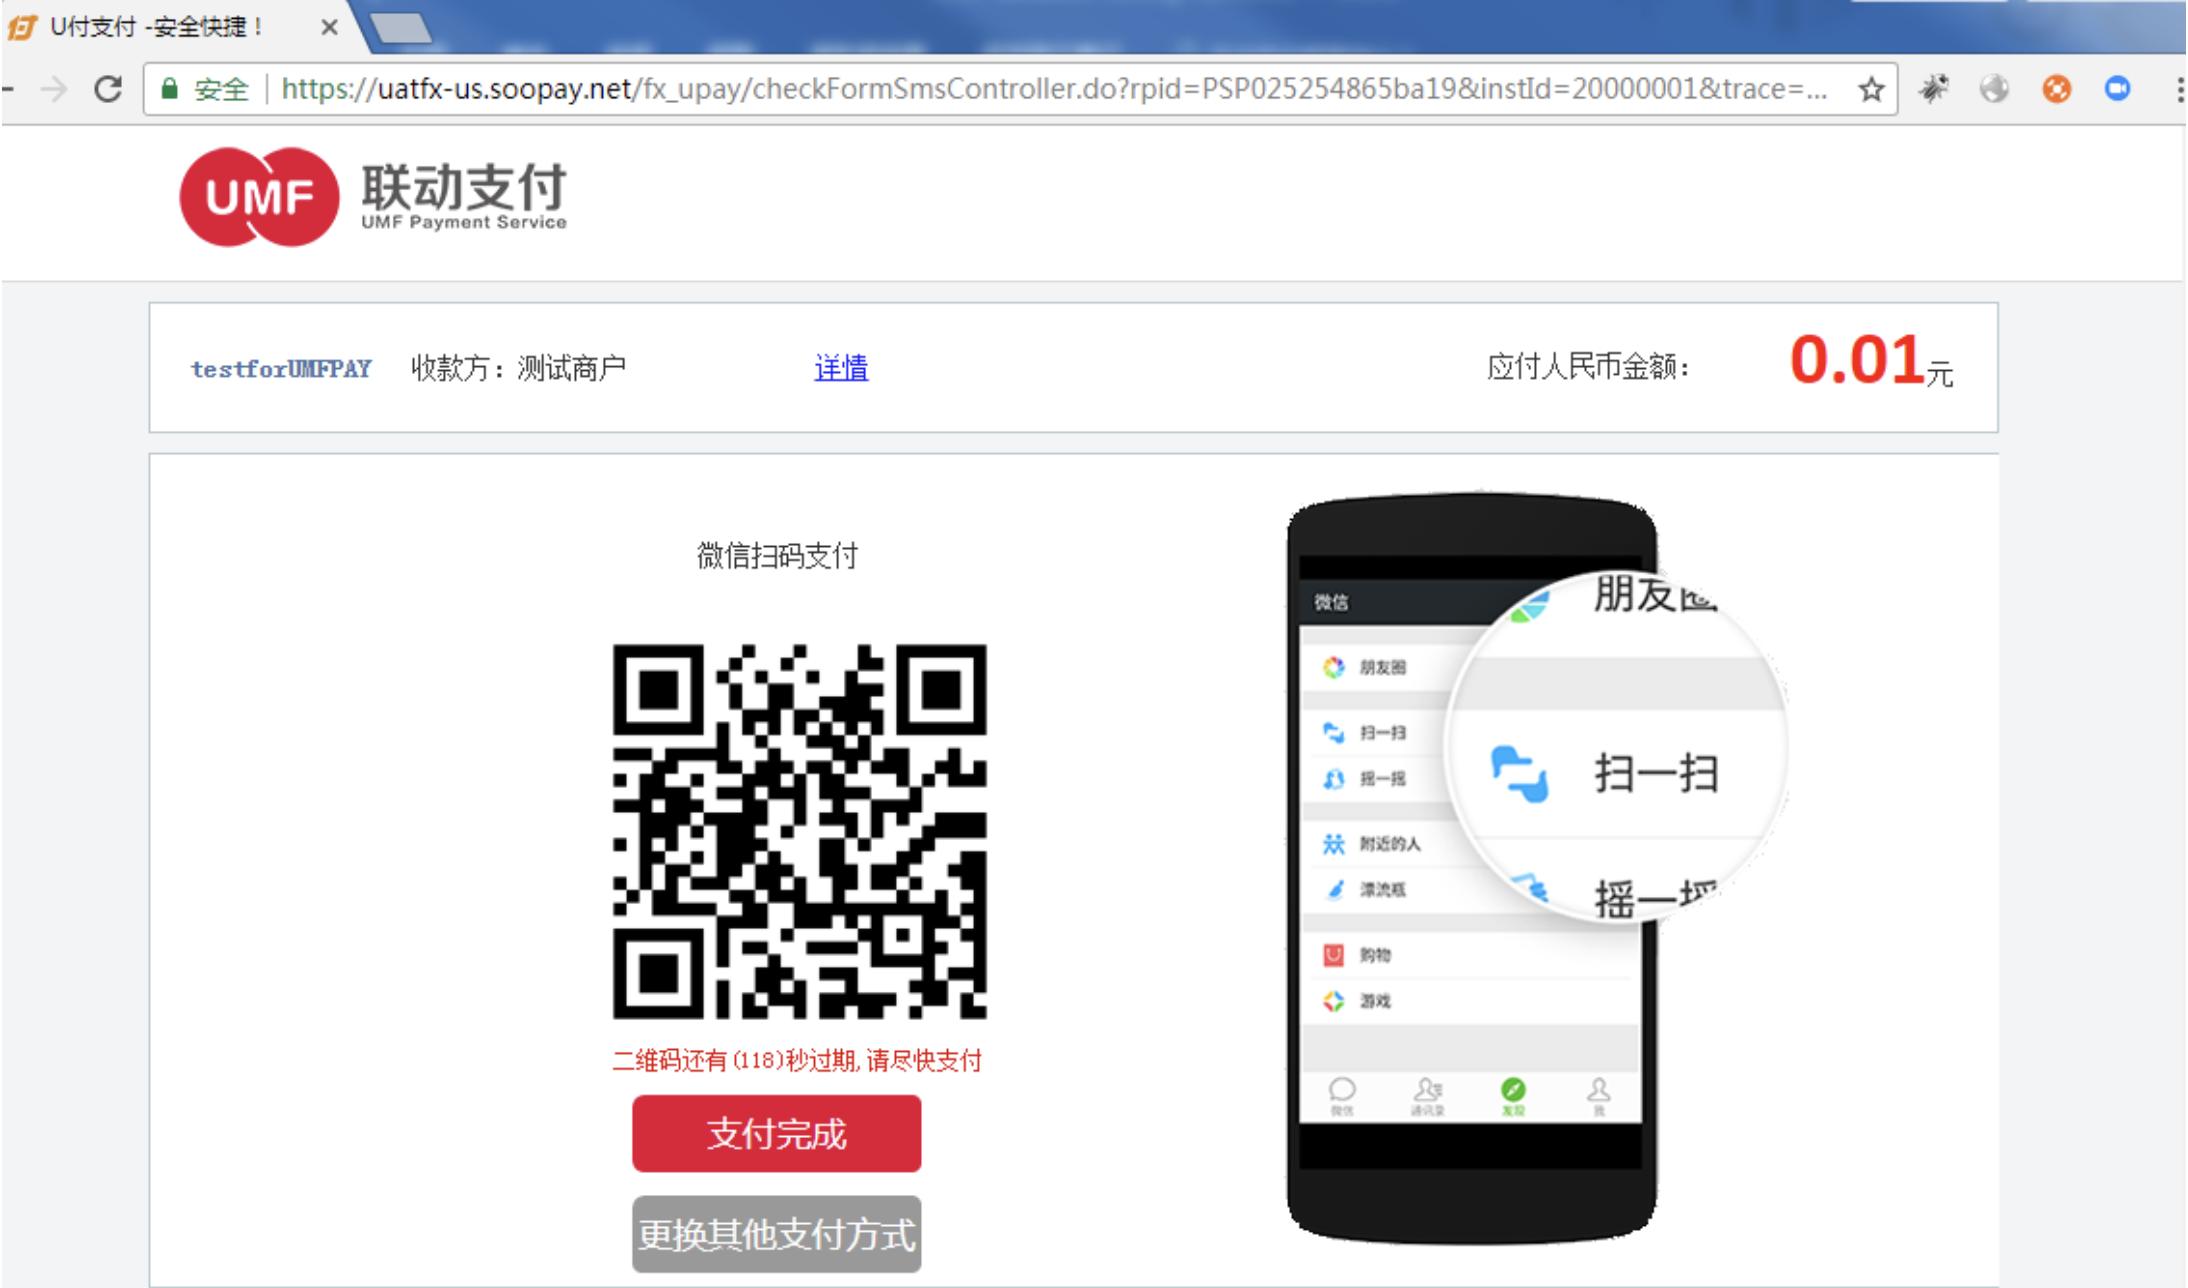 wechat_scan_5.png